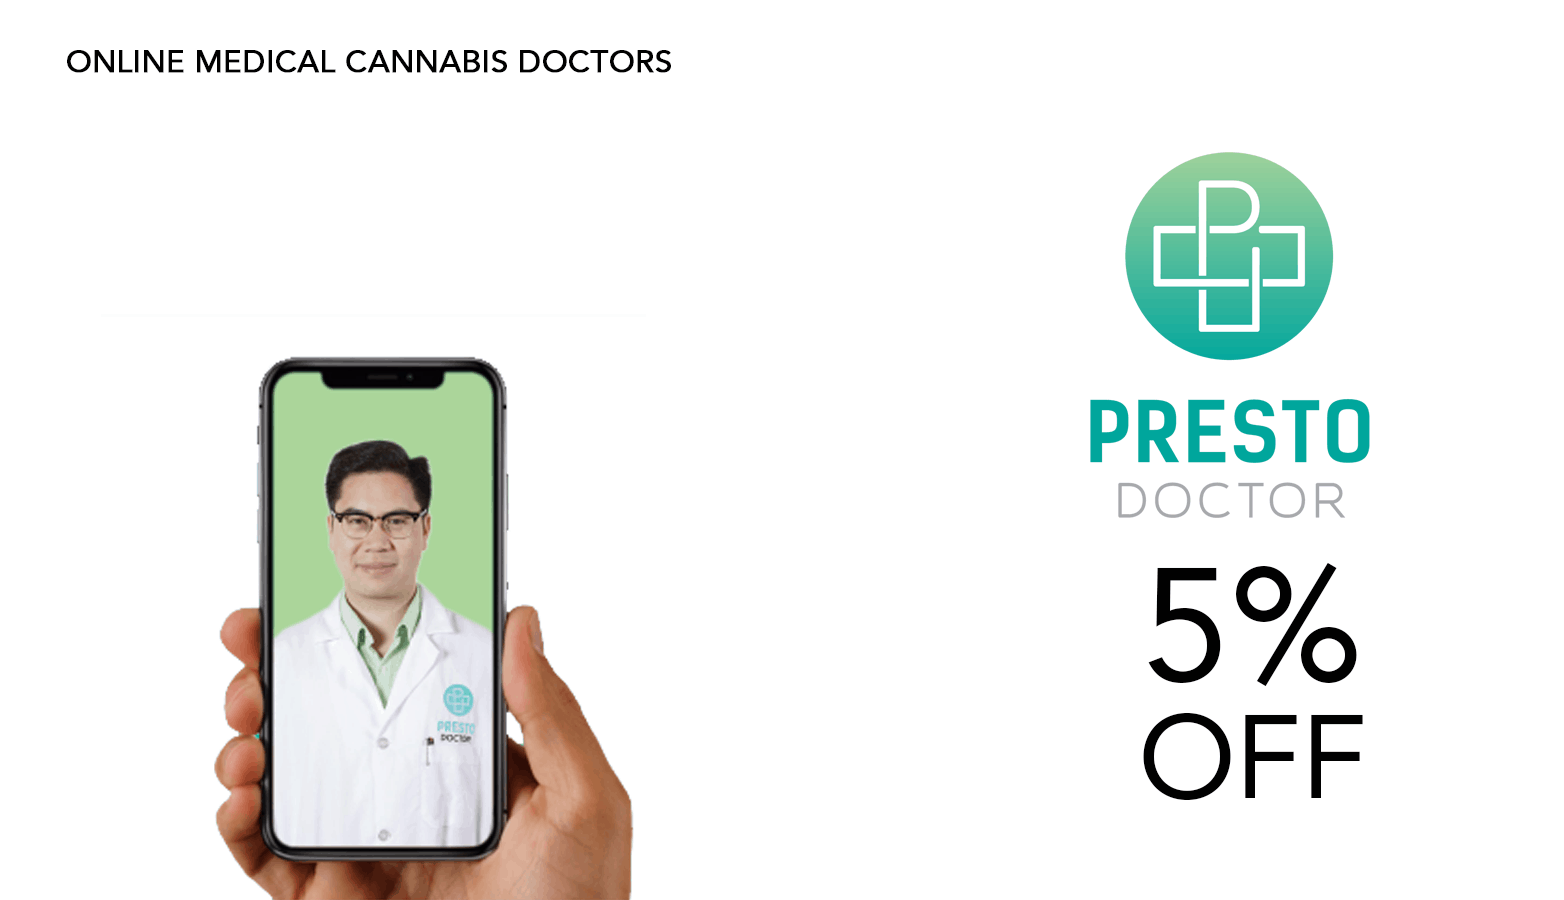 Presto Doctor Cannabis Coupon Code Website